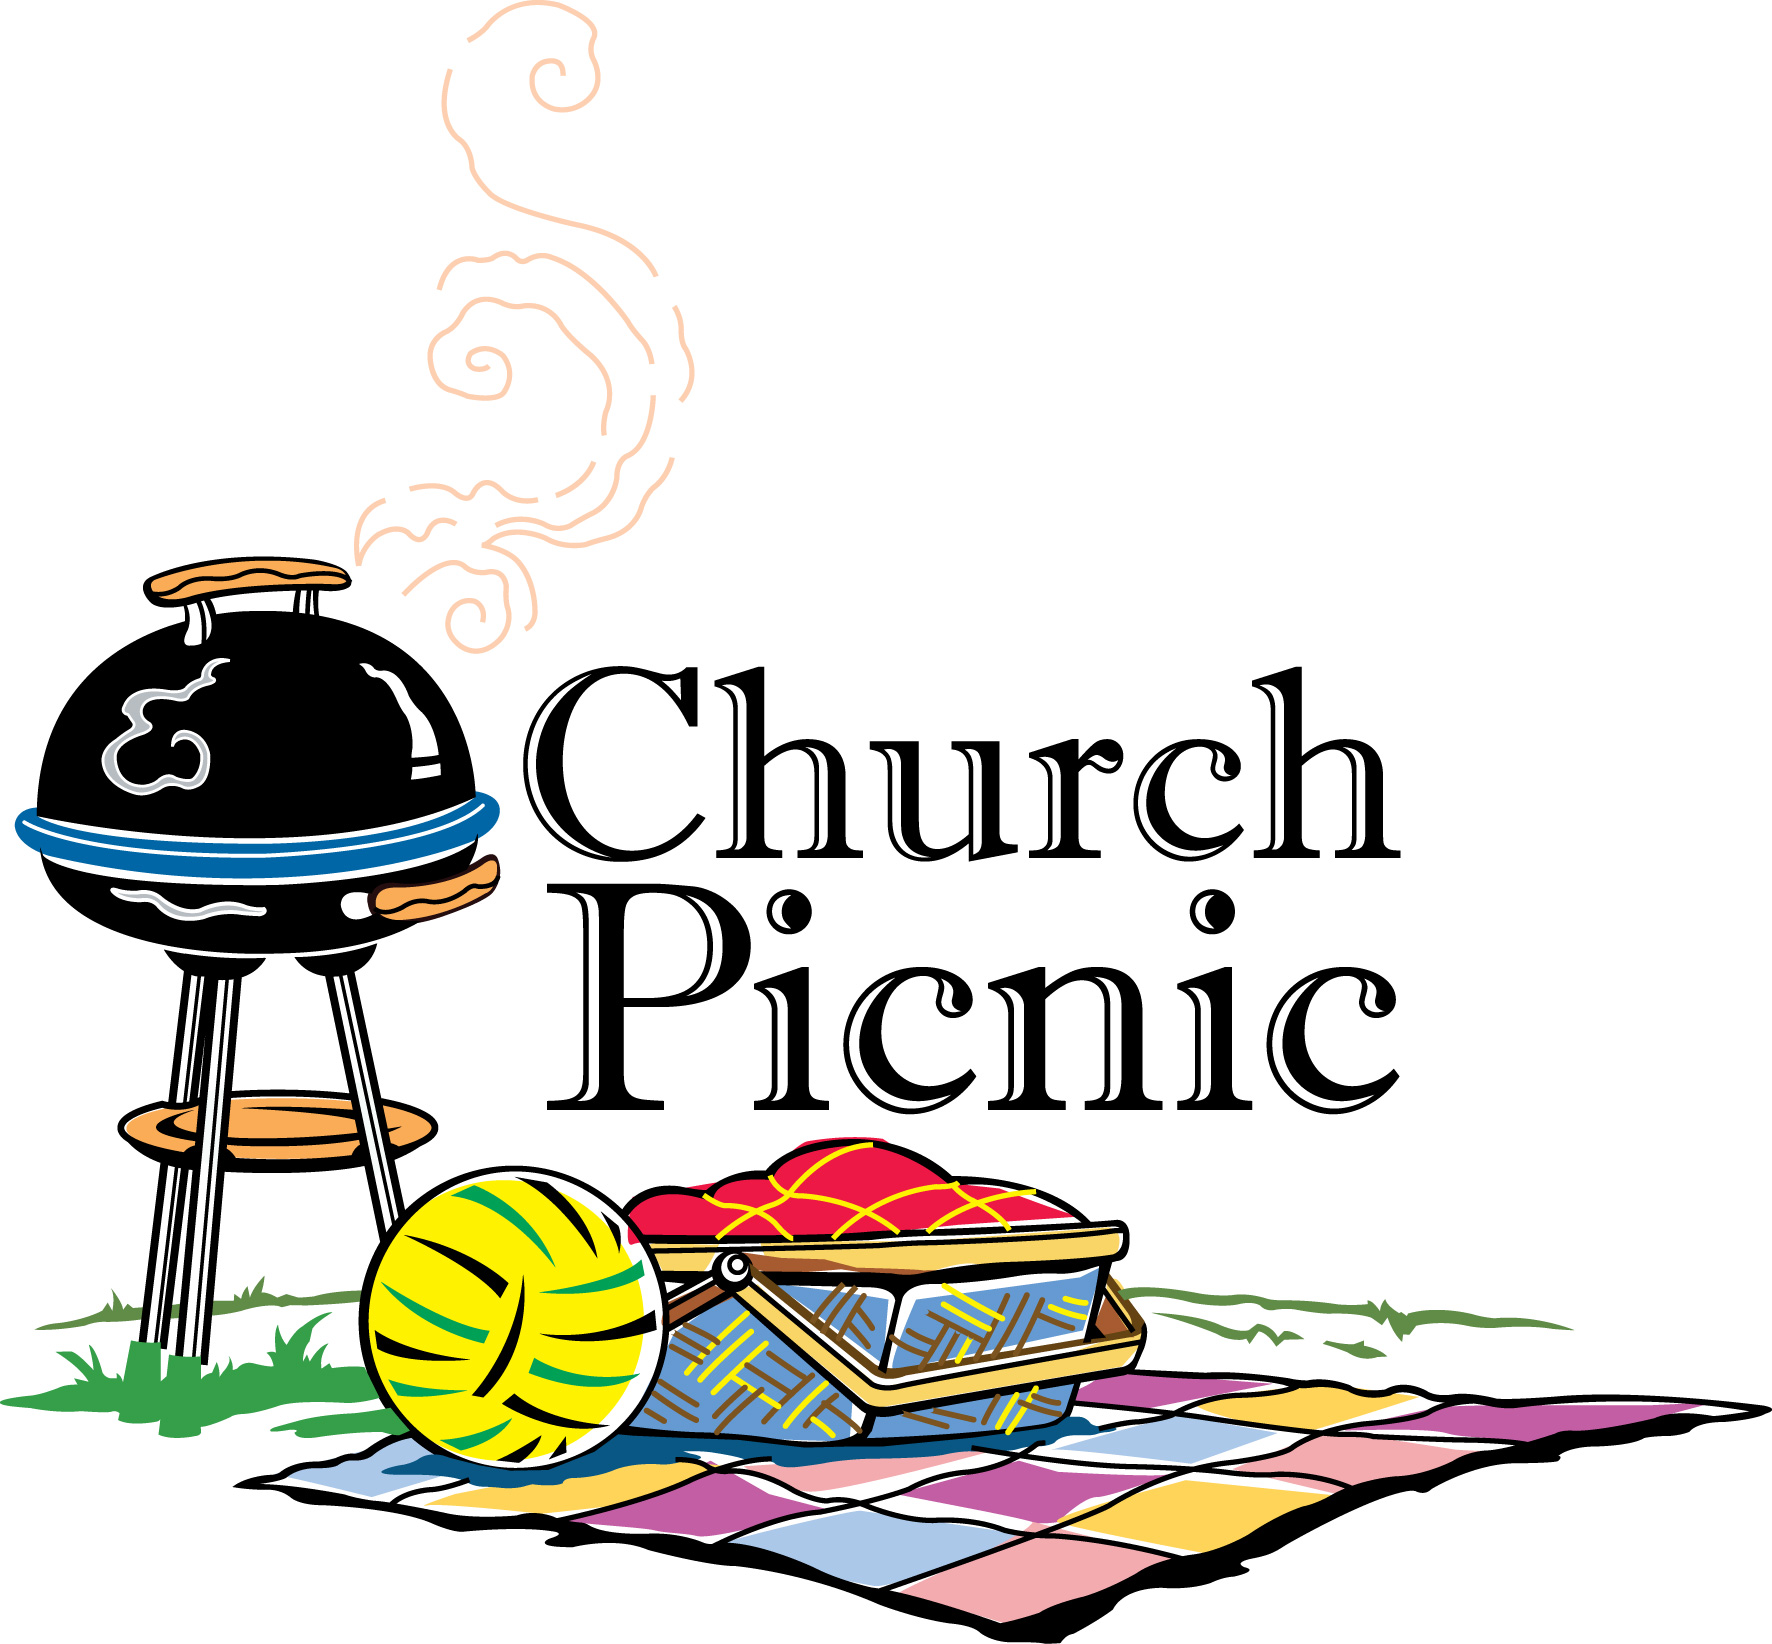 16 Picnic Images Free Cliparts That You Can Download To You Computer